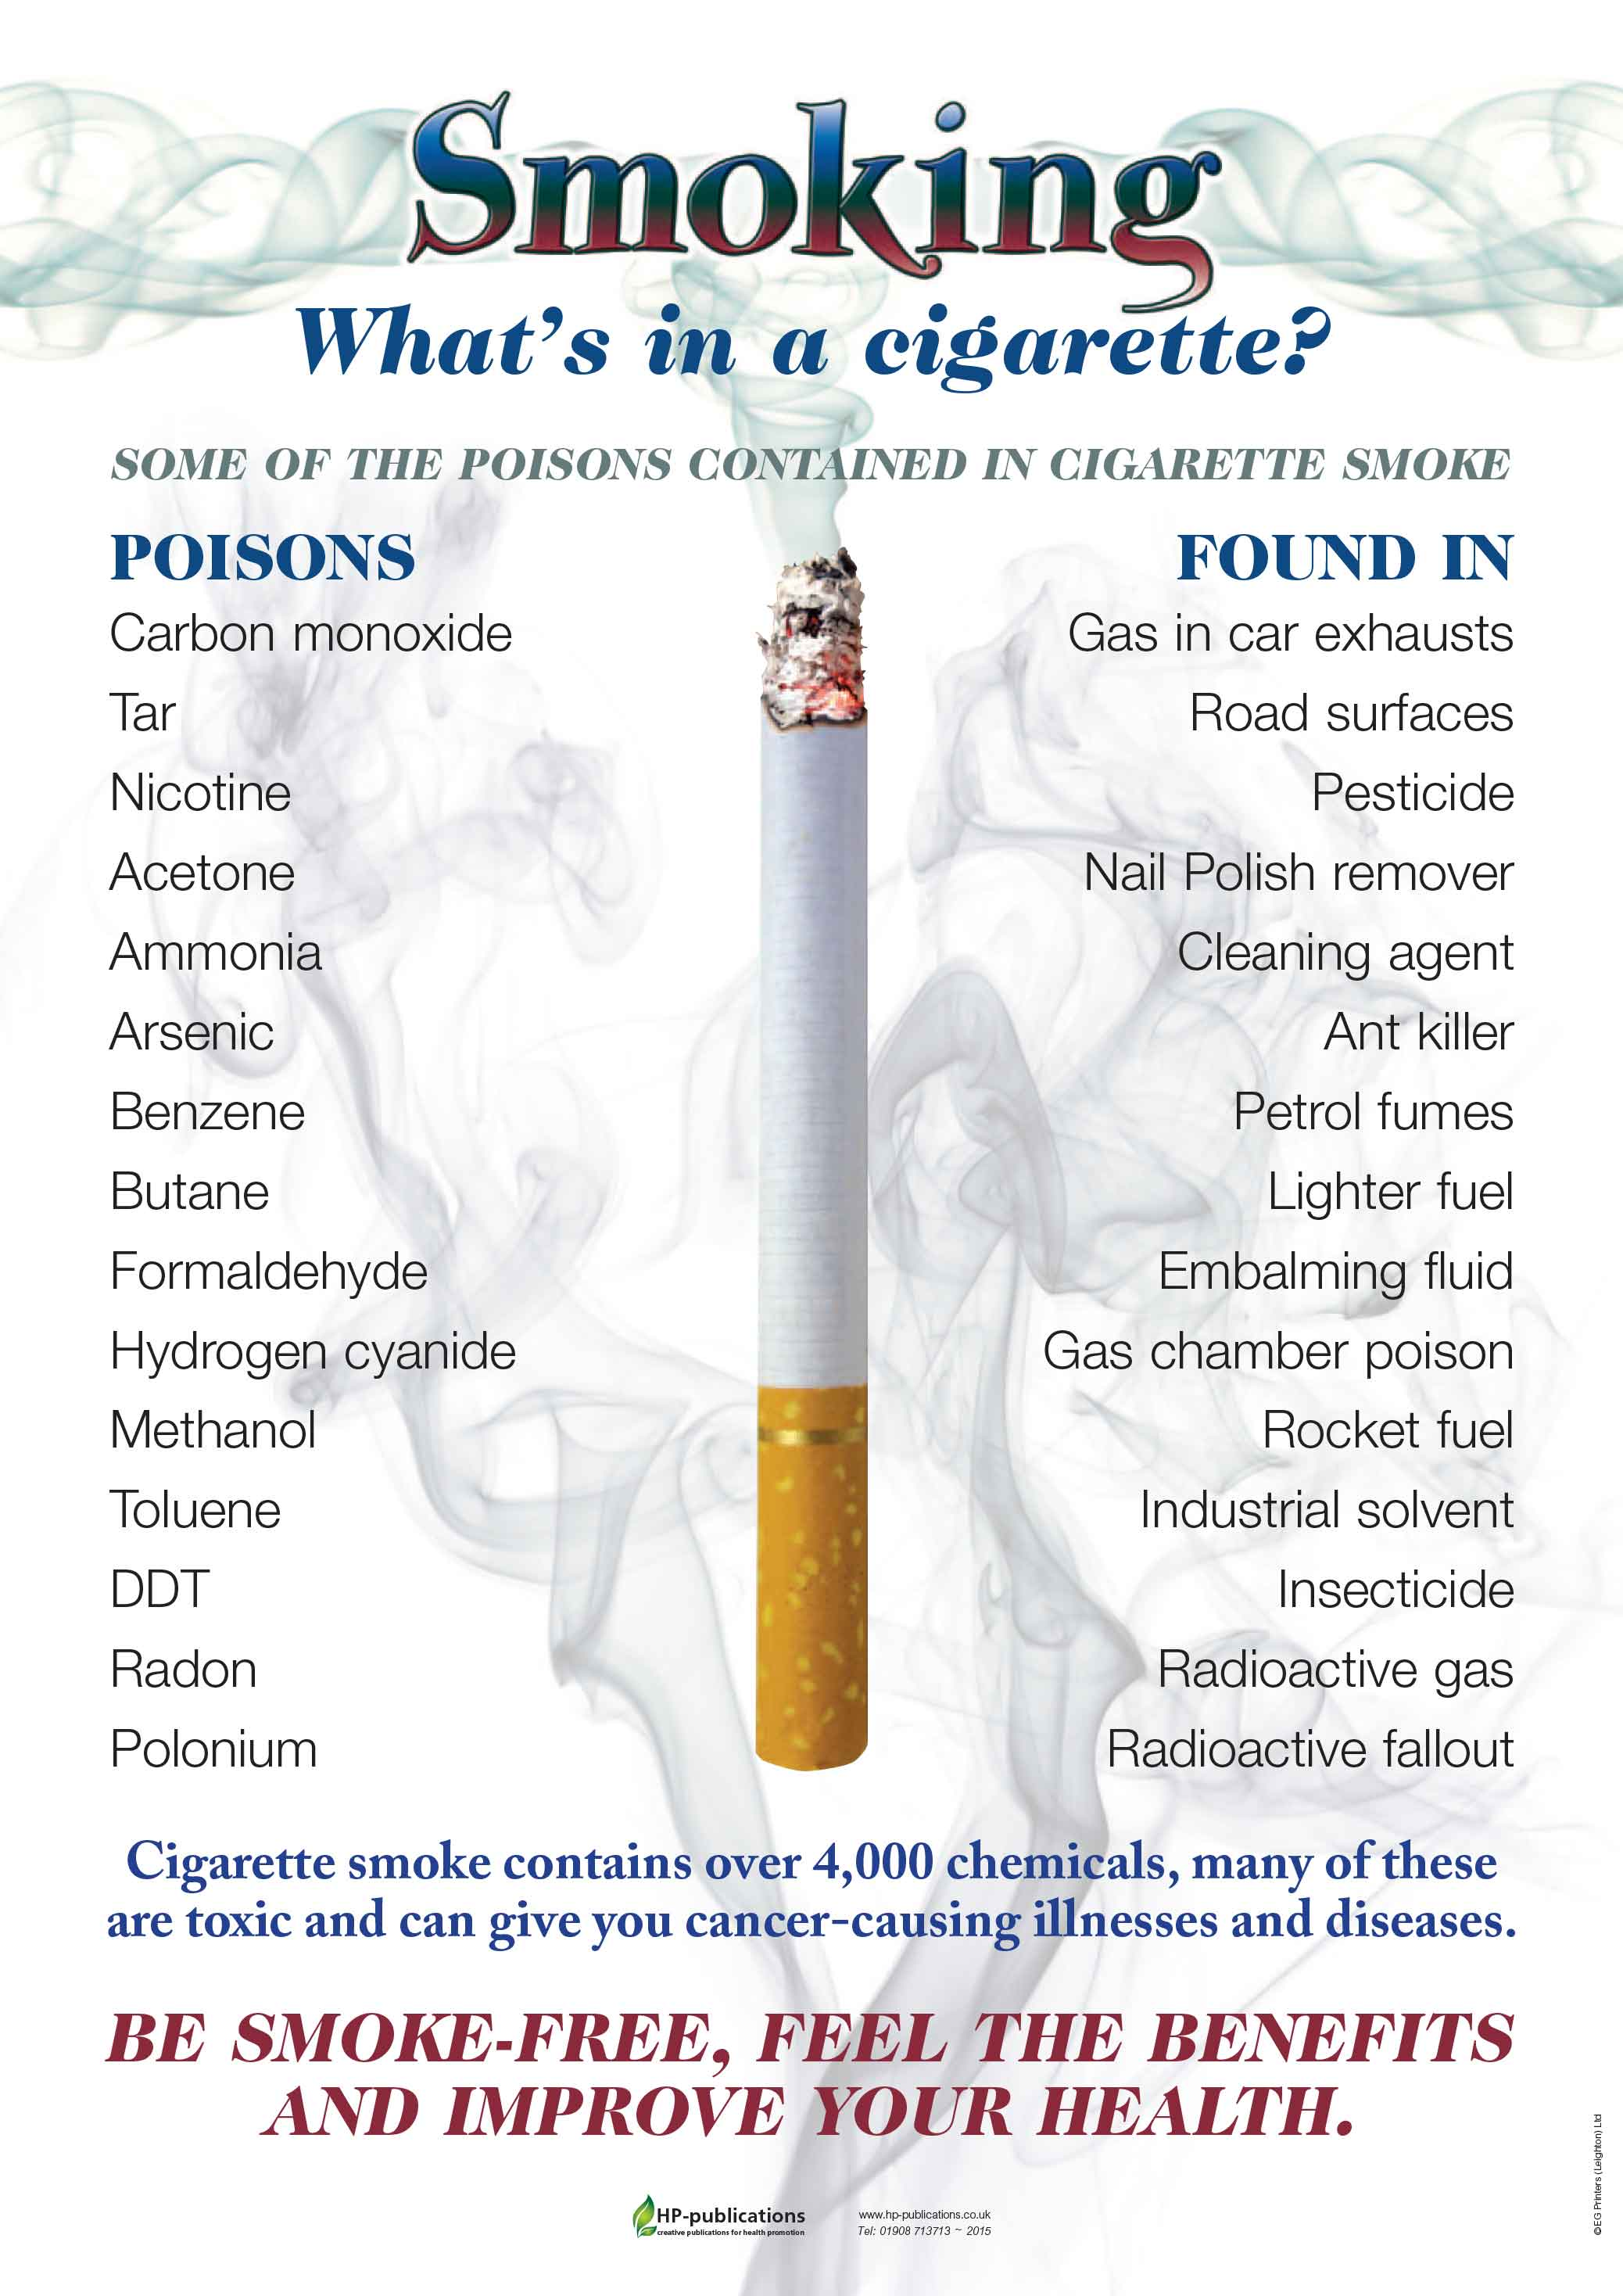 Smoking: what's in a cigarette?